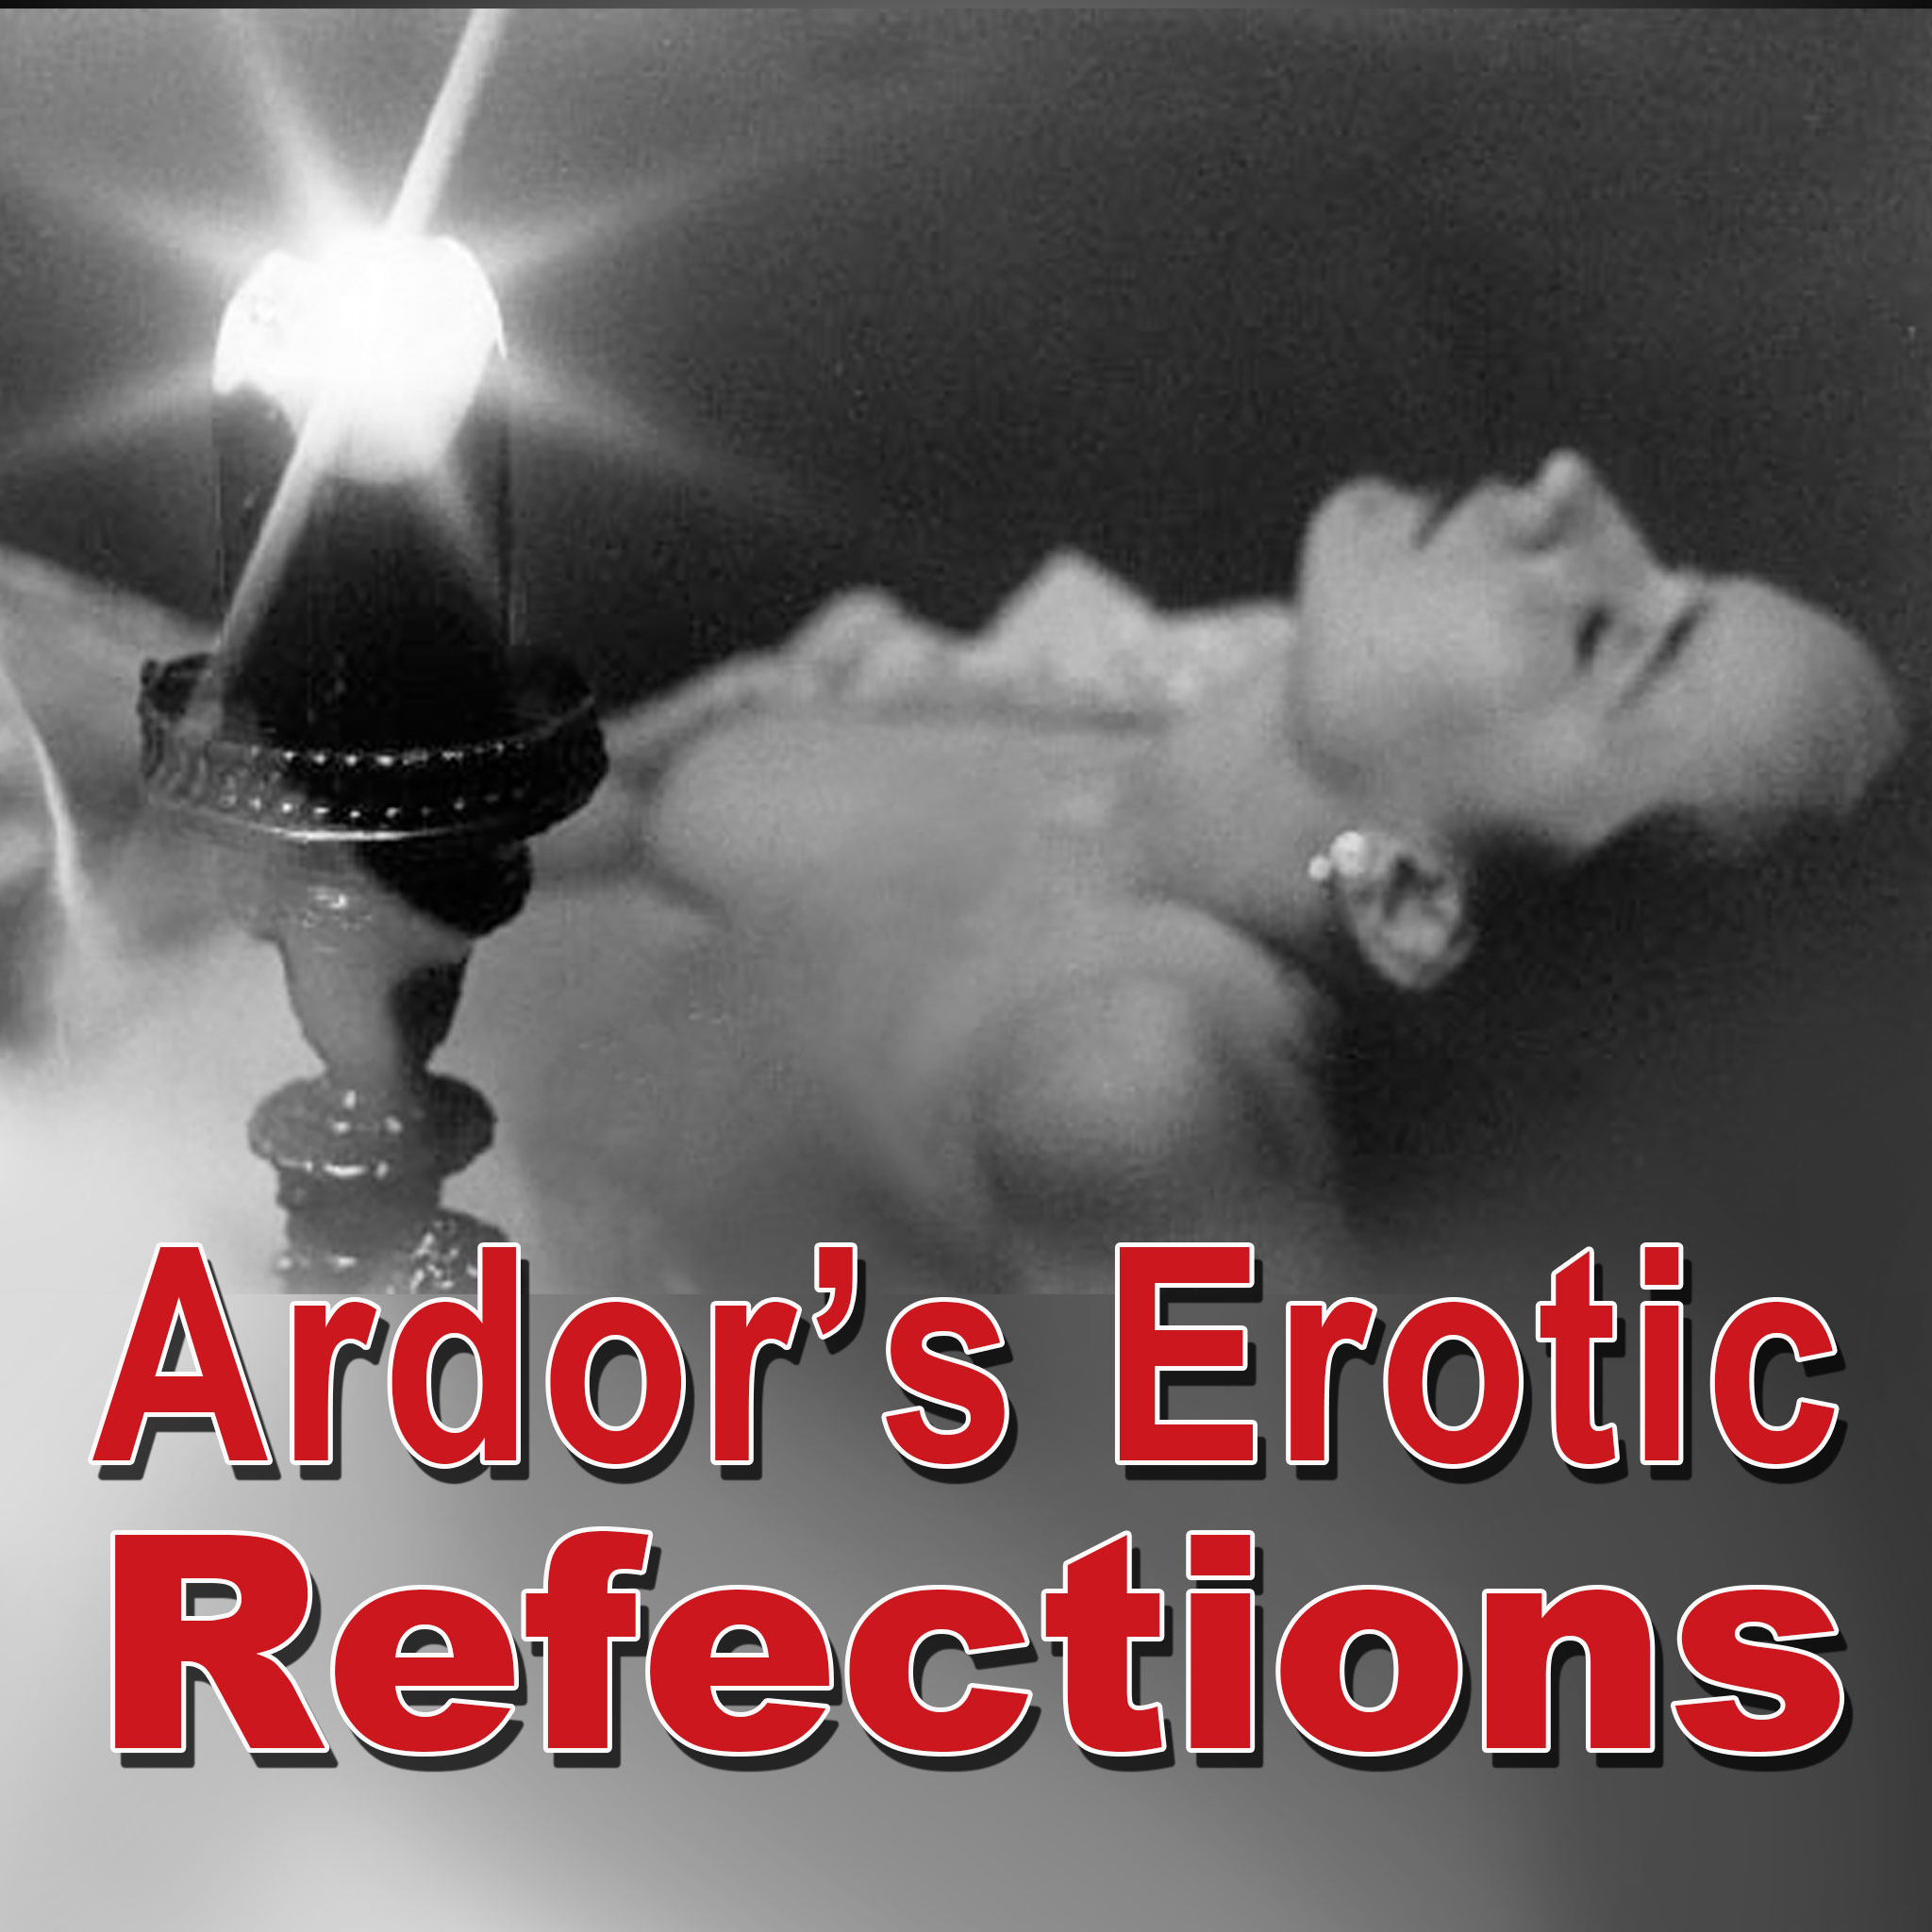 Ardor's Erotic Reflections